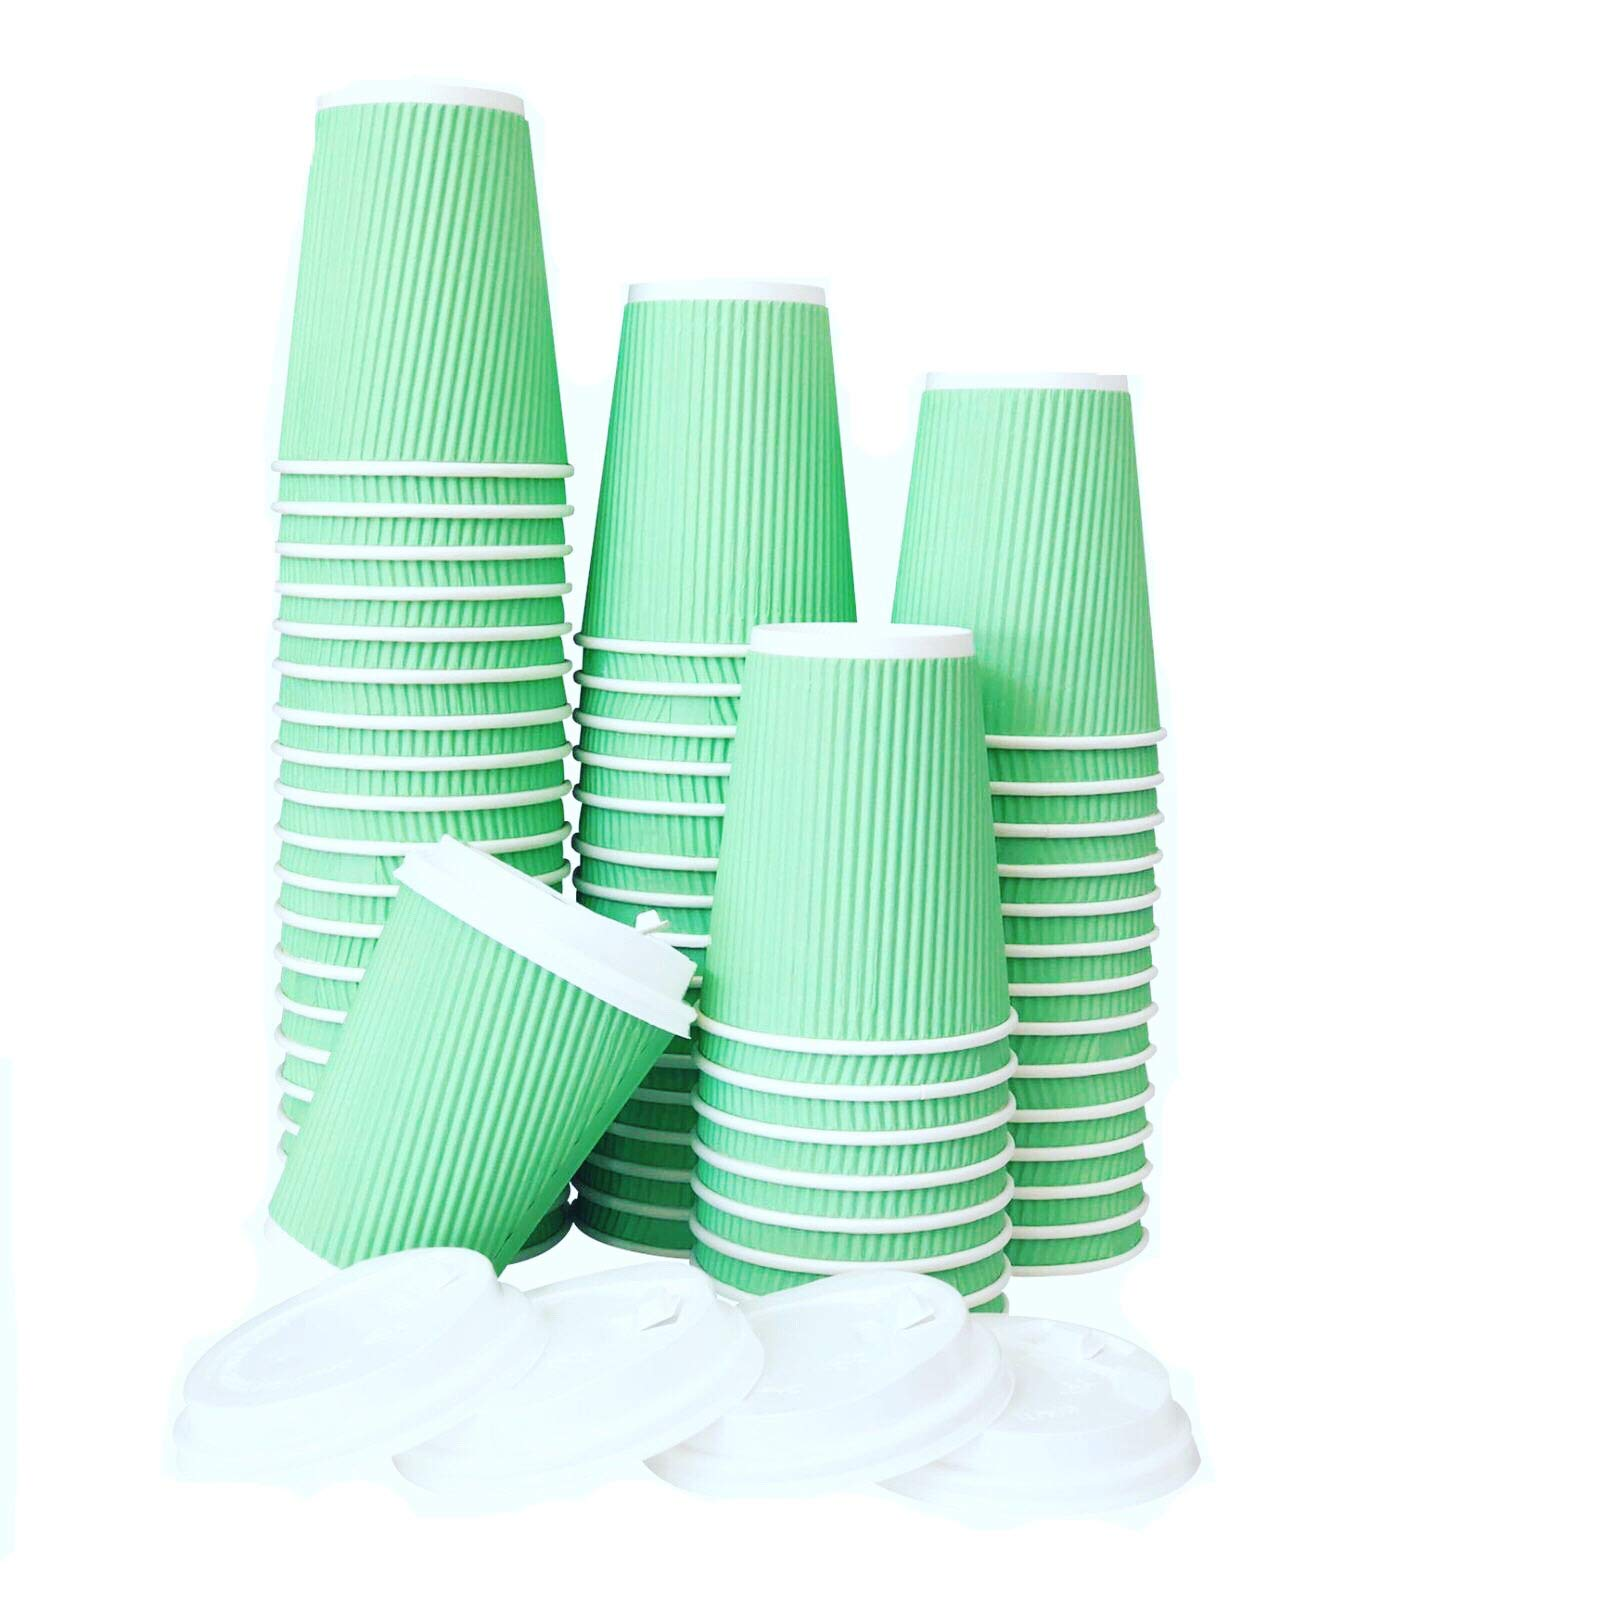 60 Pack -12 oz Premium Quality Disposable Hot Paper Coffee Cups With Lids - Ripple Wall With Insulation For Heat Protection,No Leak Lid,No Sleeves Needed,Perfect To Go,Office,Bars,Parties & Travel by FarSmart (Image #8)